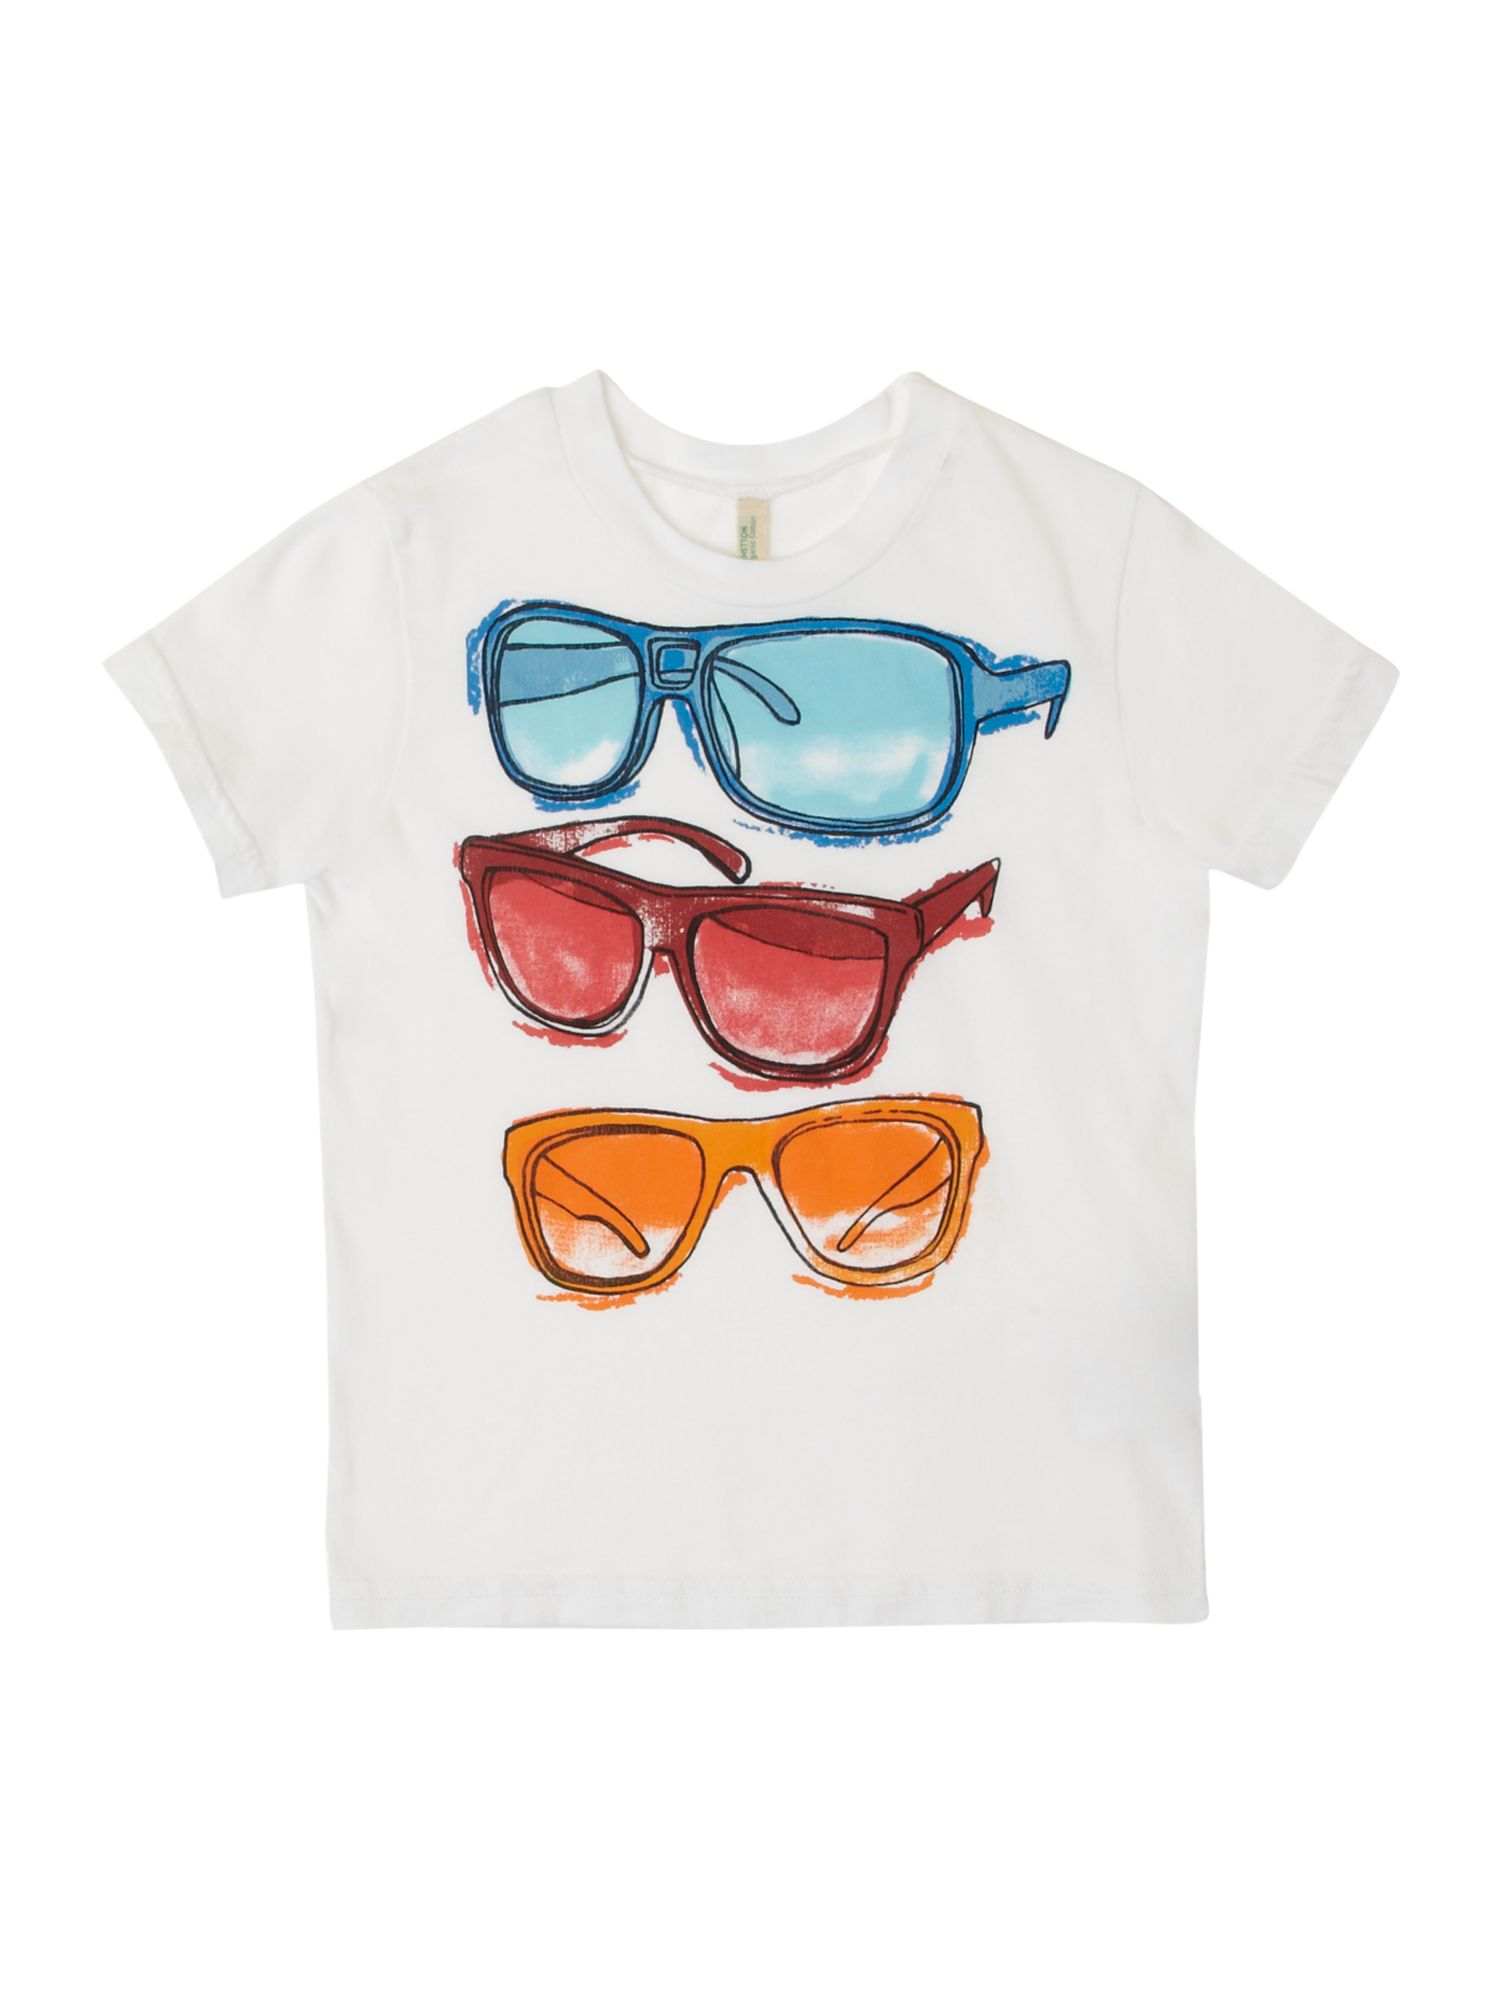 Boy`s sunglasses graphic T-shirt